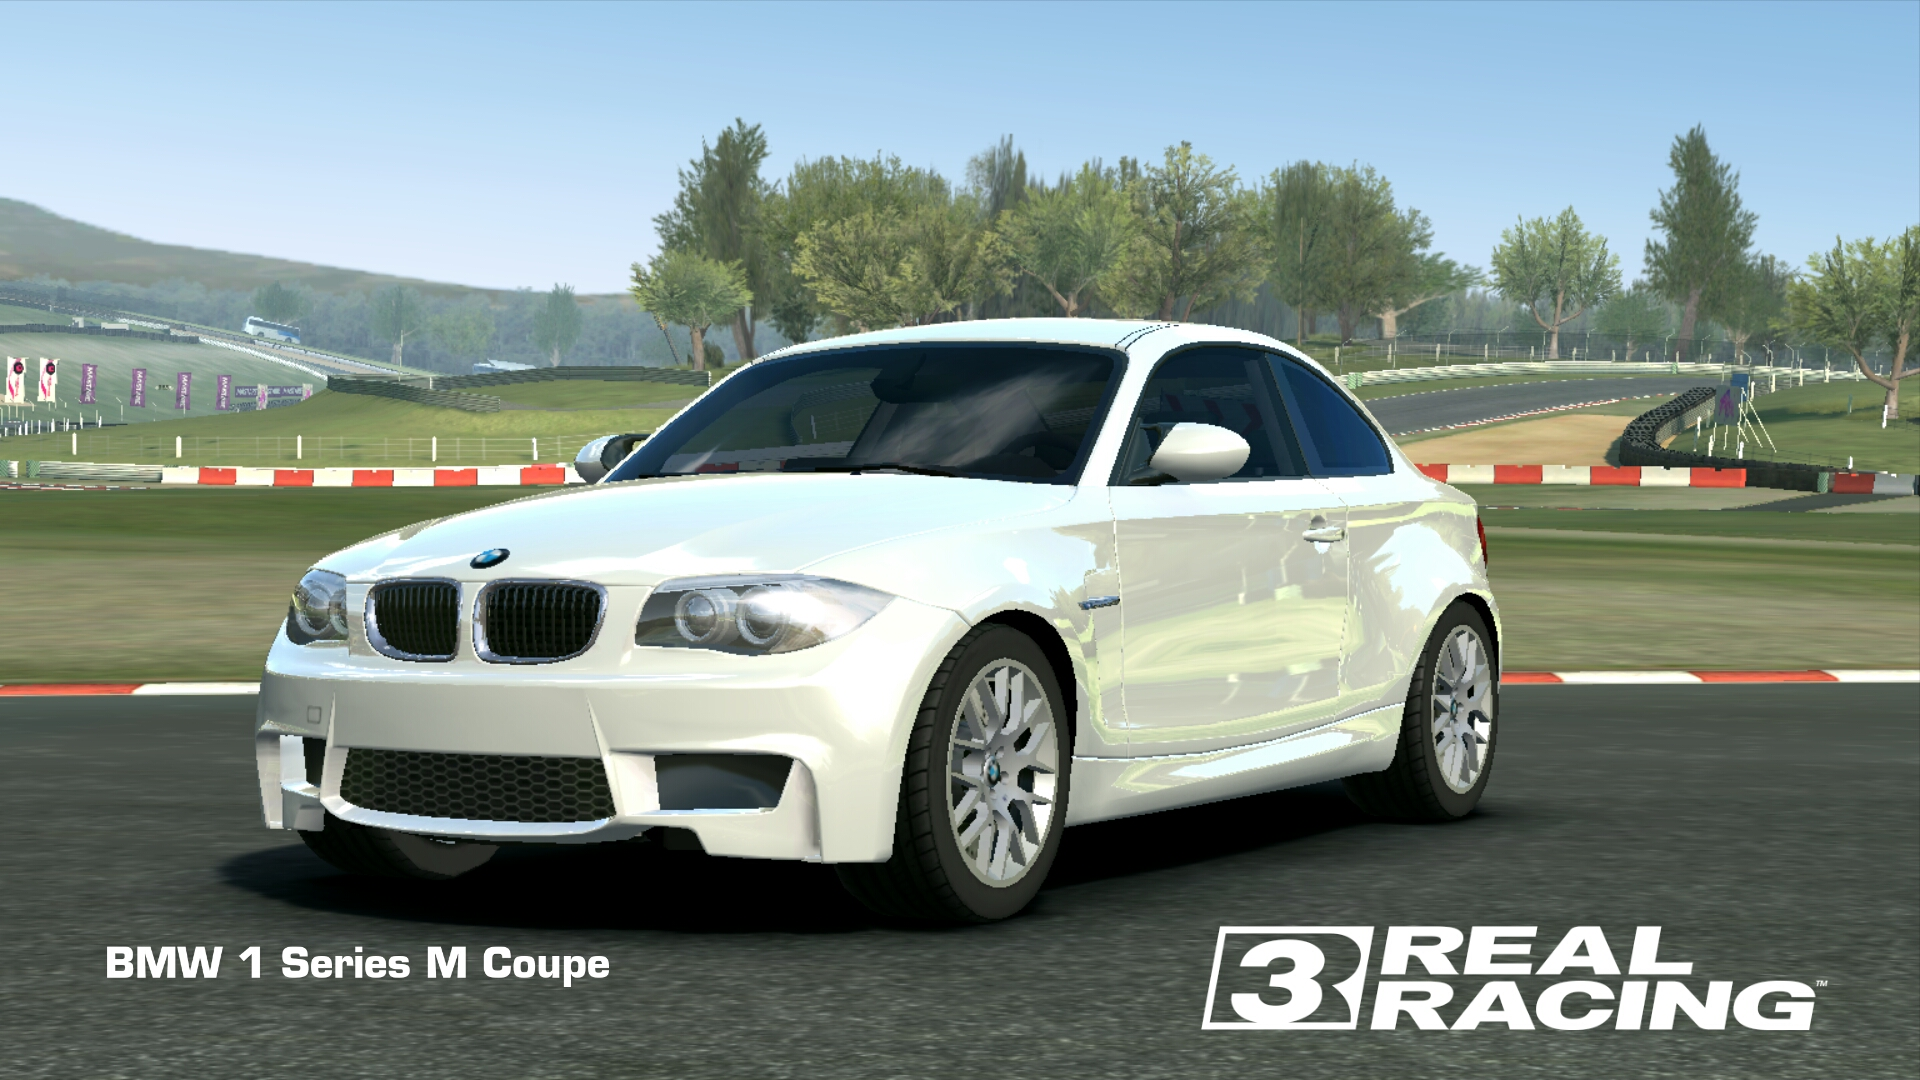 BMW 1 Series M Coupe  Real Racing 3 Wiki  FANDOM powered by Wikia